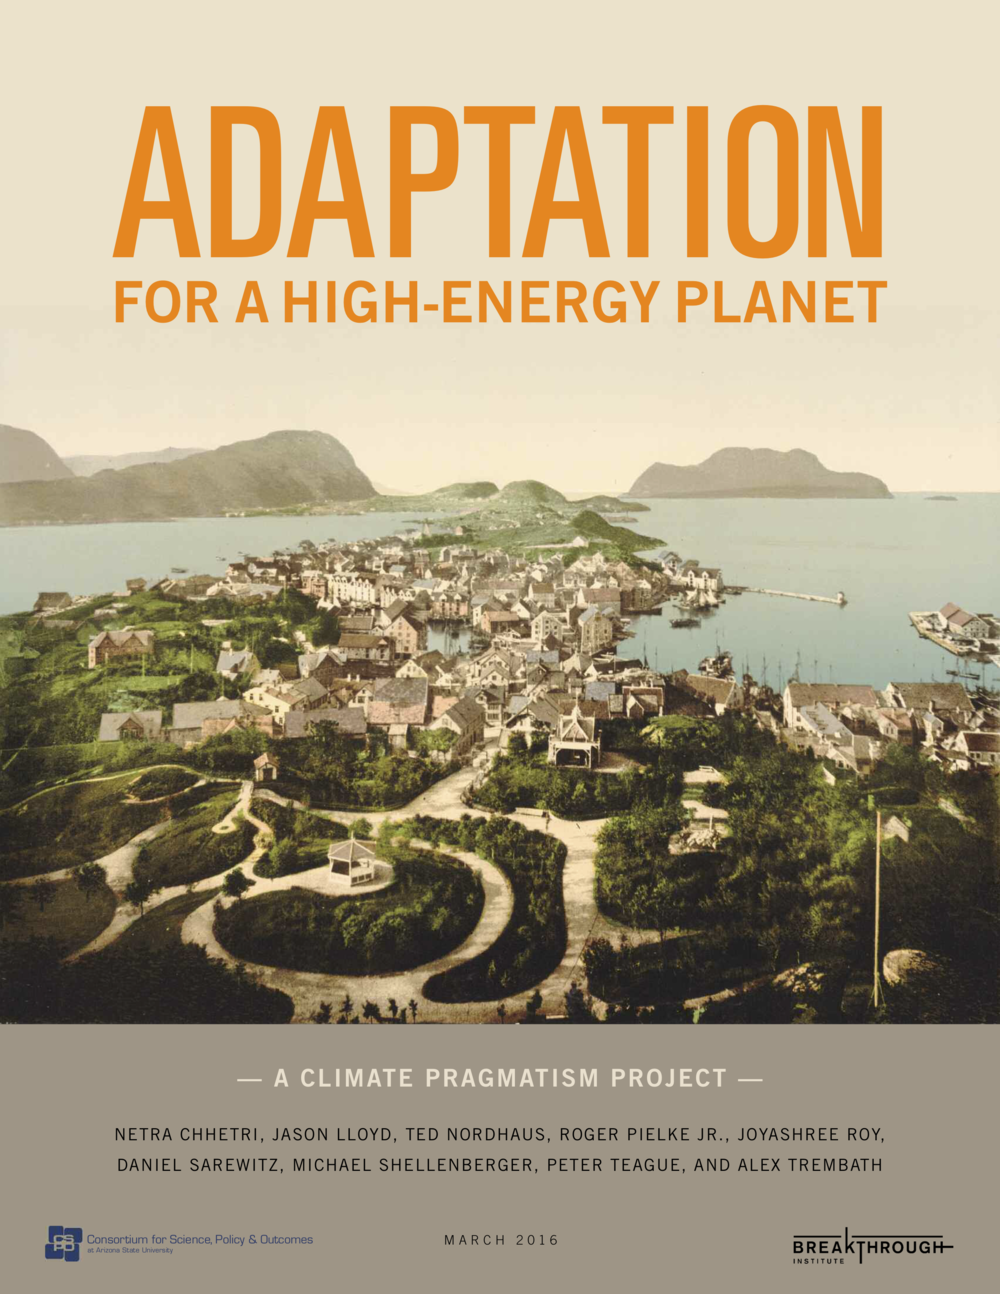 Adaptation for a High-Energy Planet